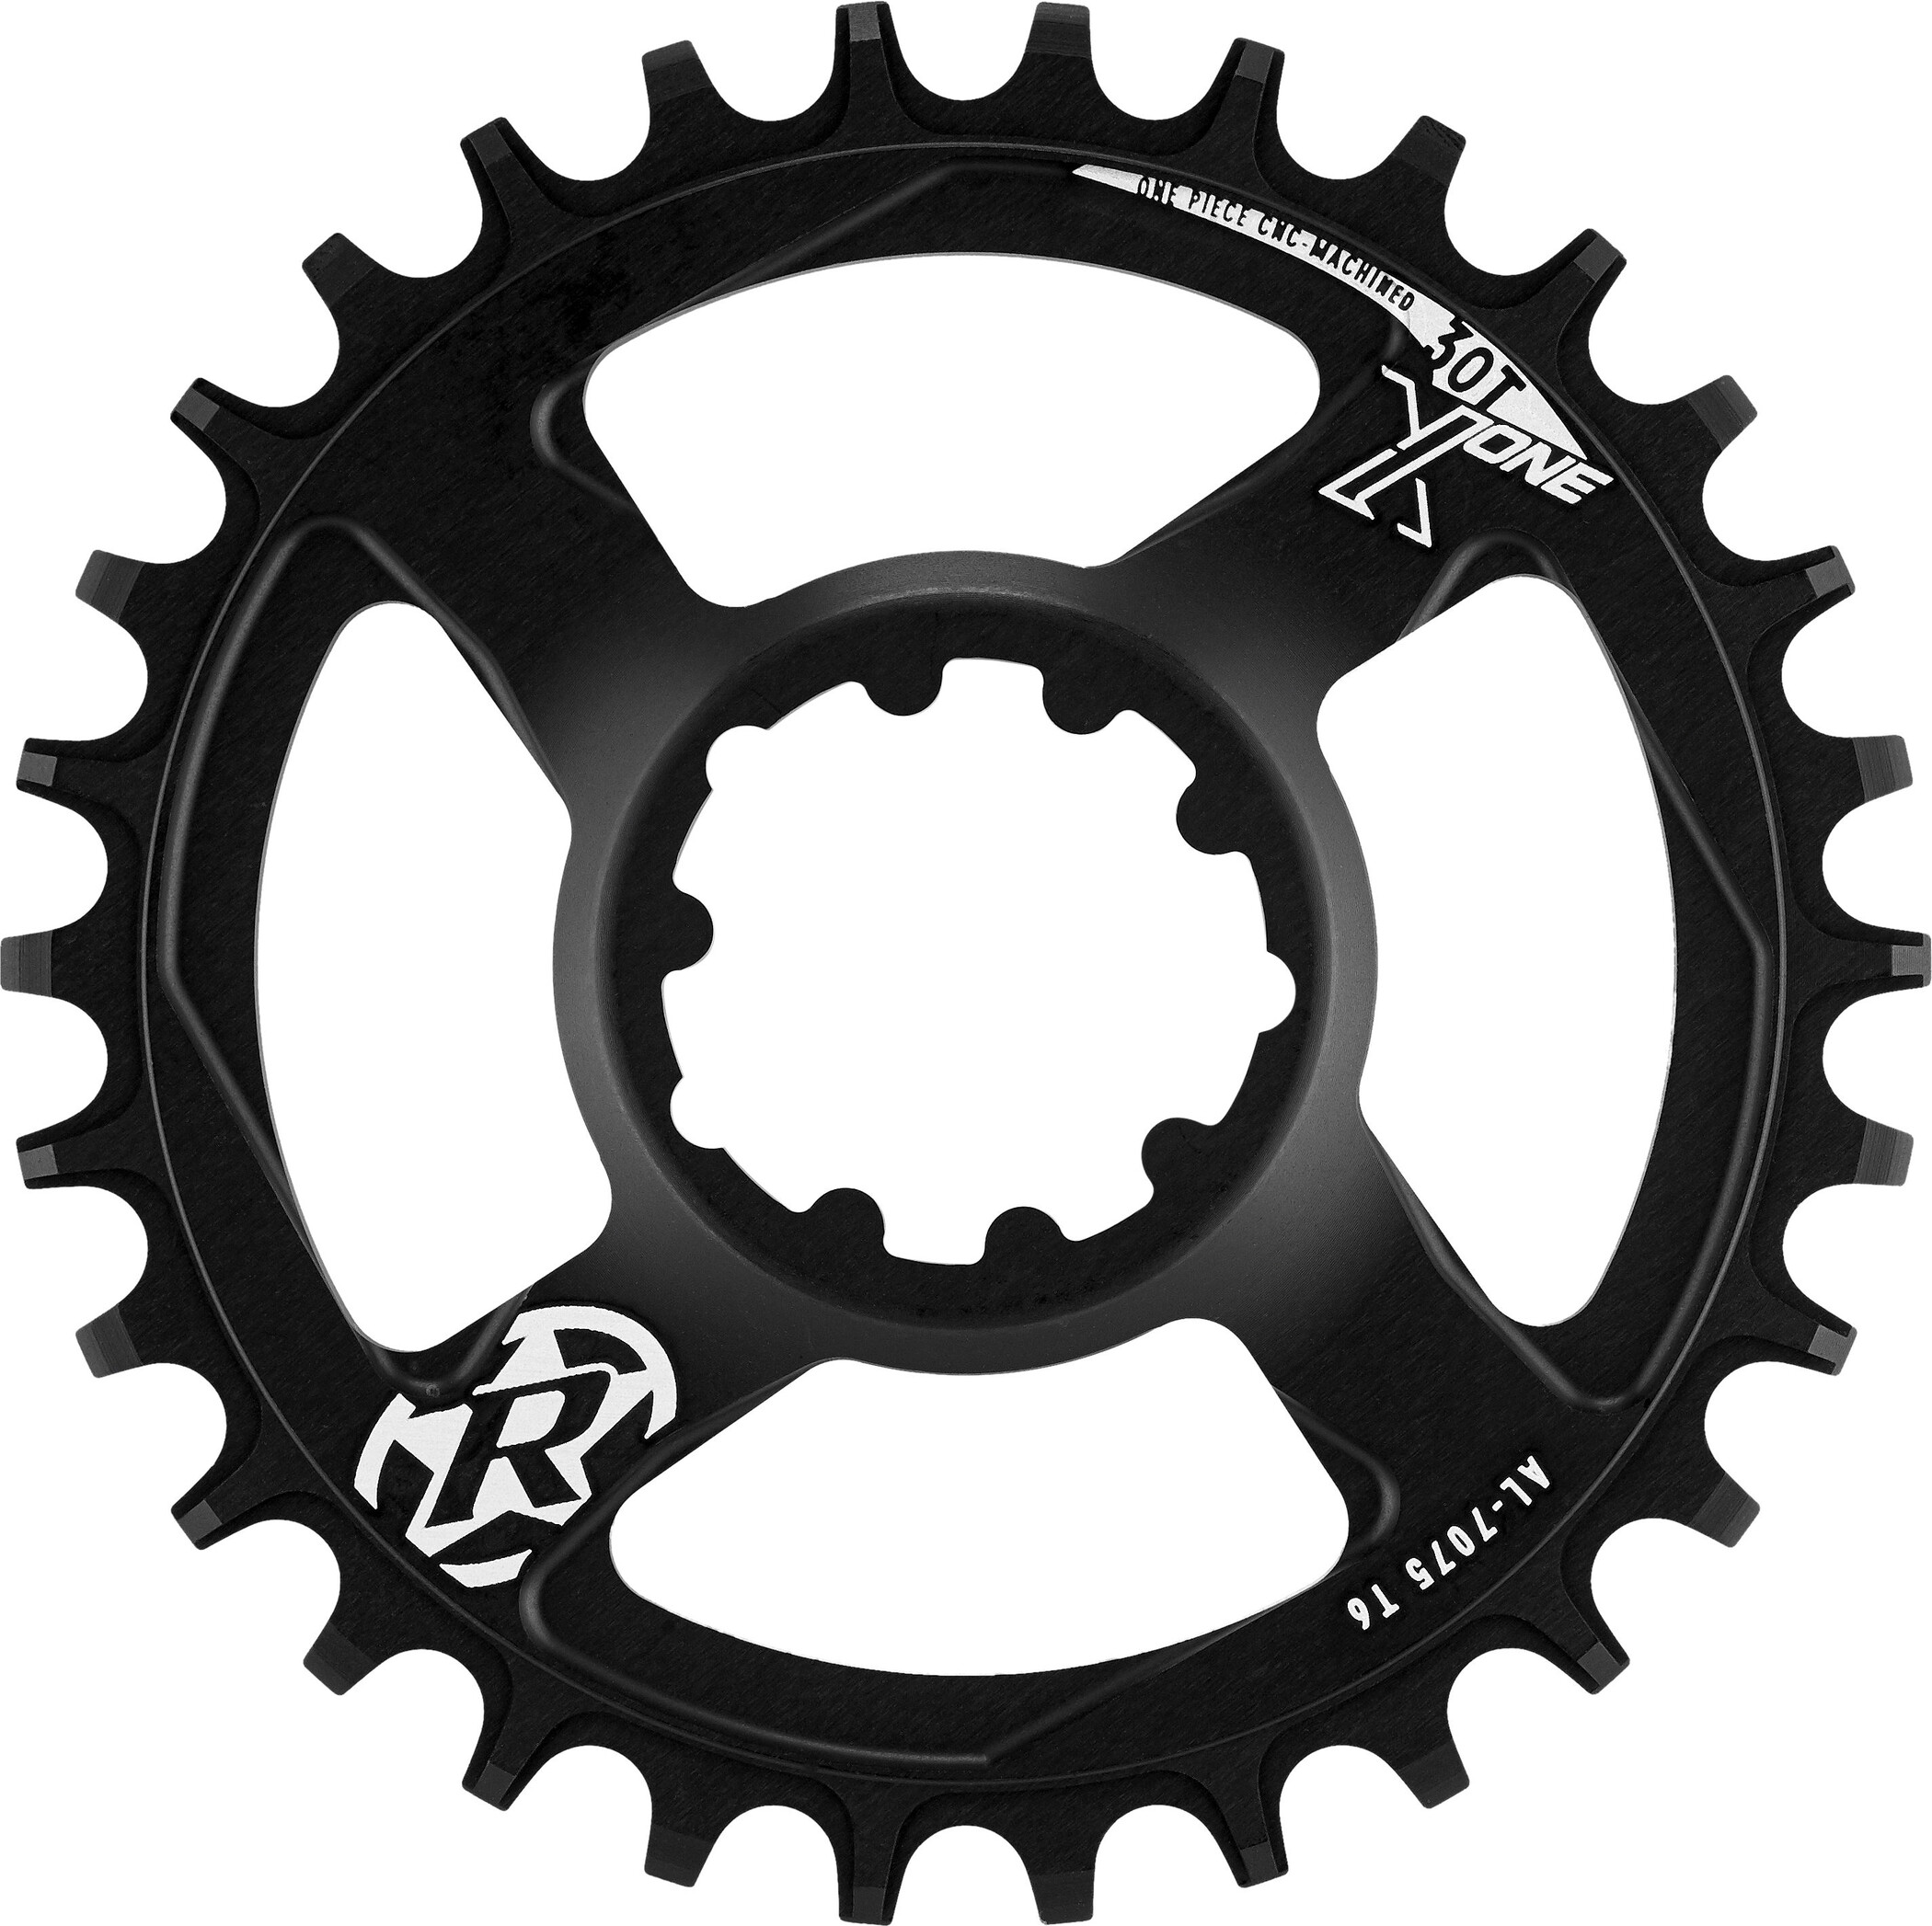 Reverse CW X-ONE Klinge Narrow Wide Re-Sync, black | chainrings_component